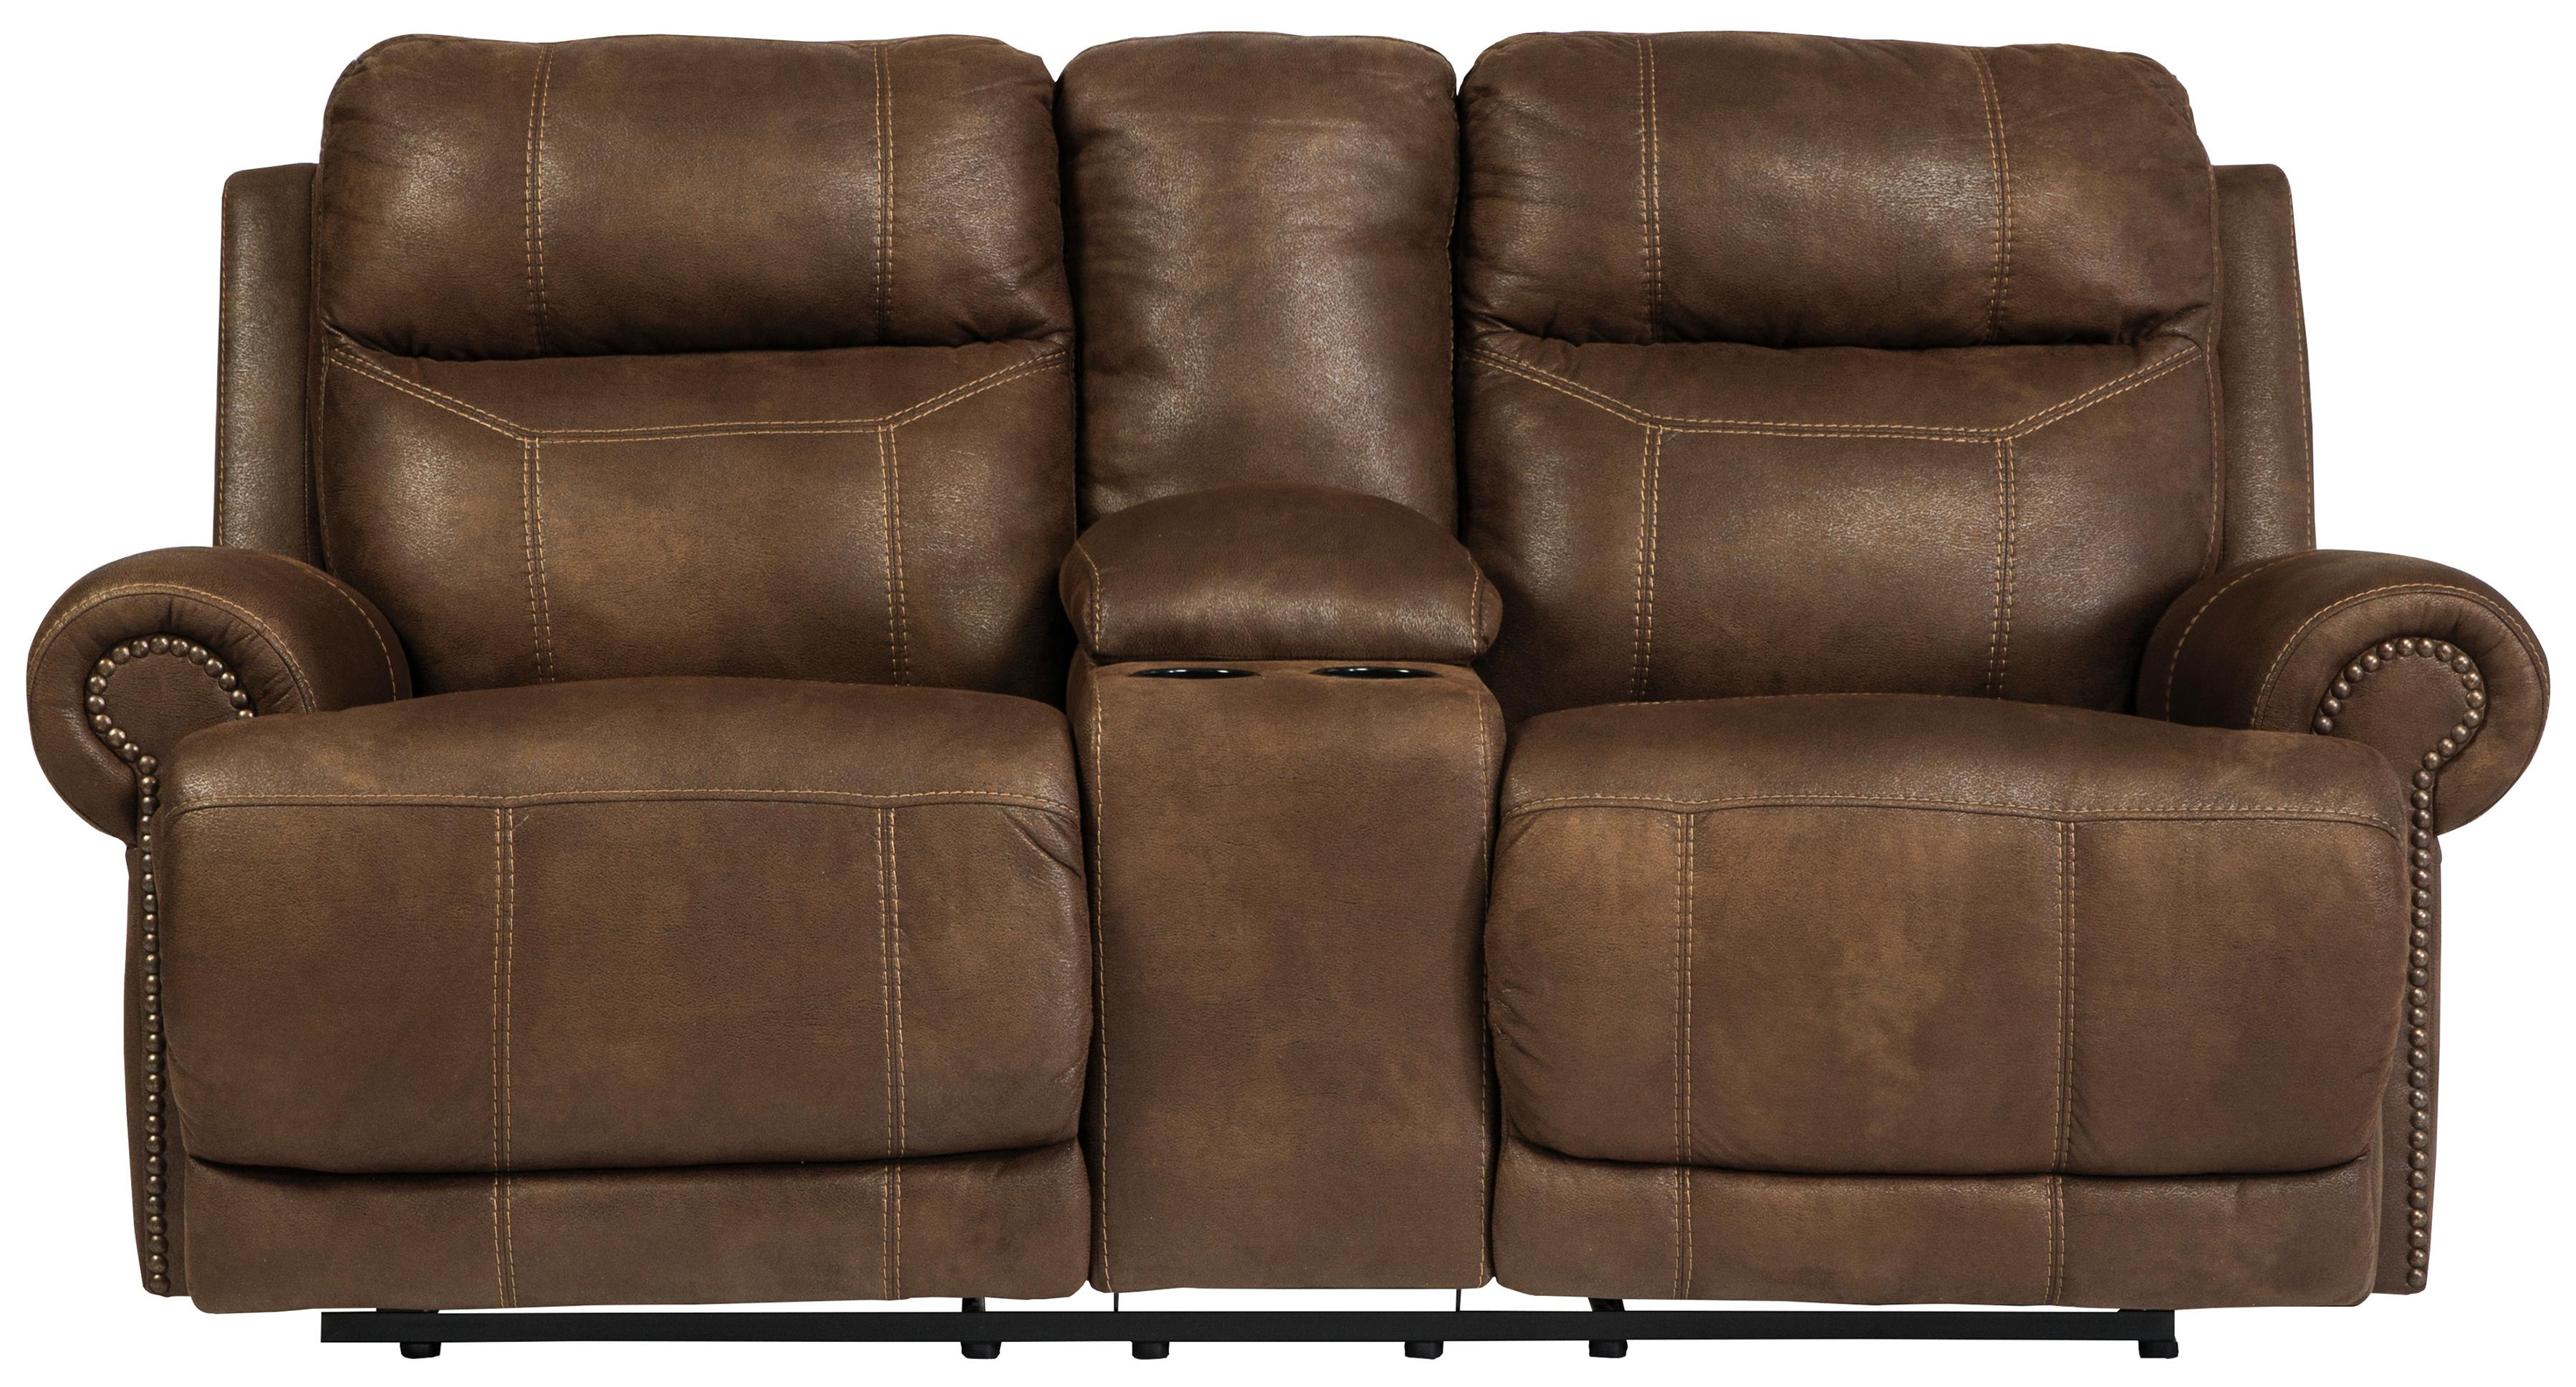 double recliner chairs ergonomic rocking chair signature design by ashley austere brown